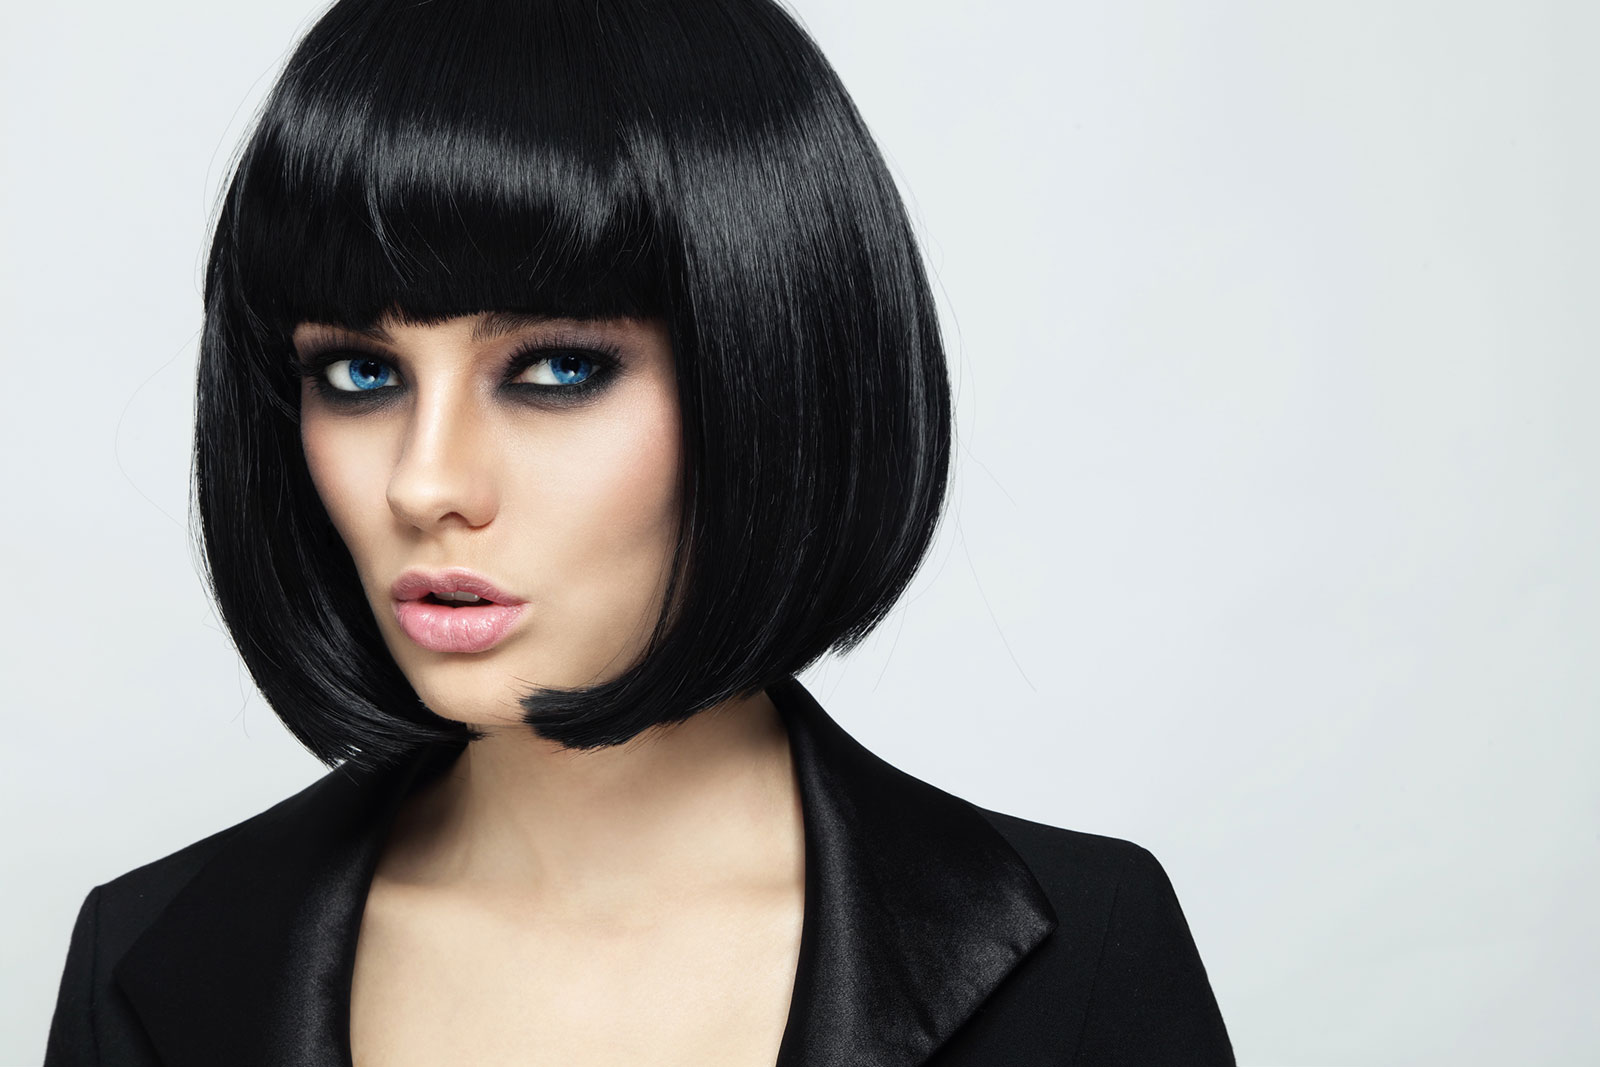 Black rounded bob with inward curl